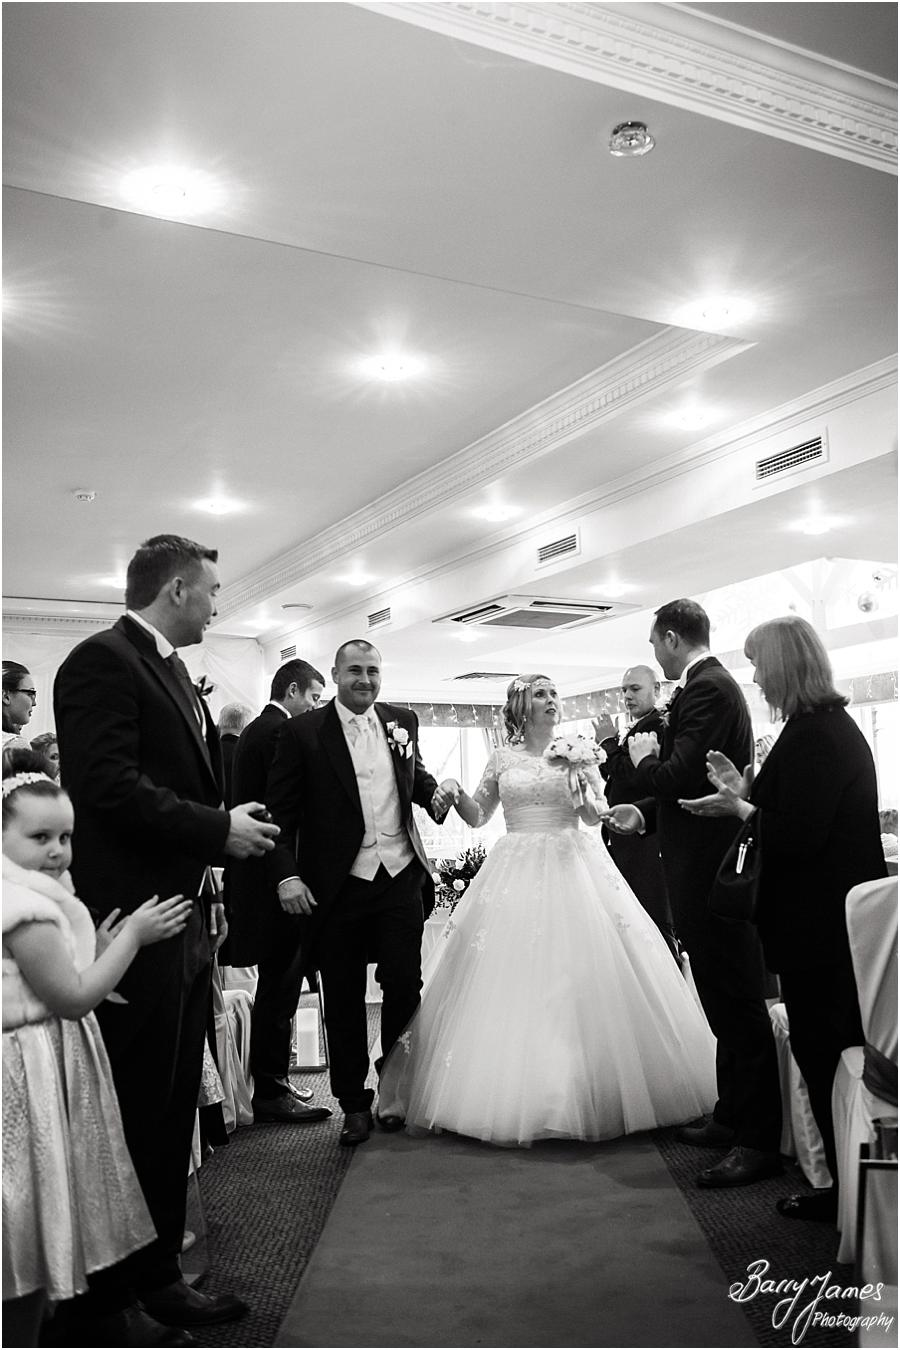 Photographs that capture the beautiful wedding ceremony at The Moat House in Acton Trussell by Stafford Wedding Photographer Barry James